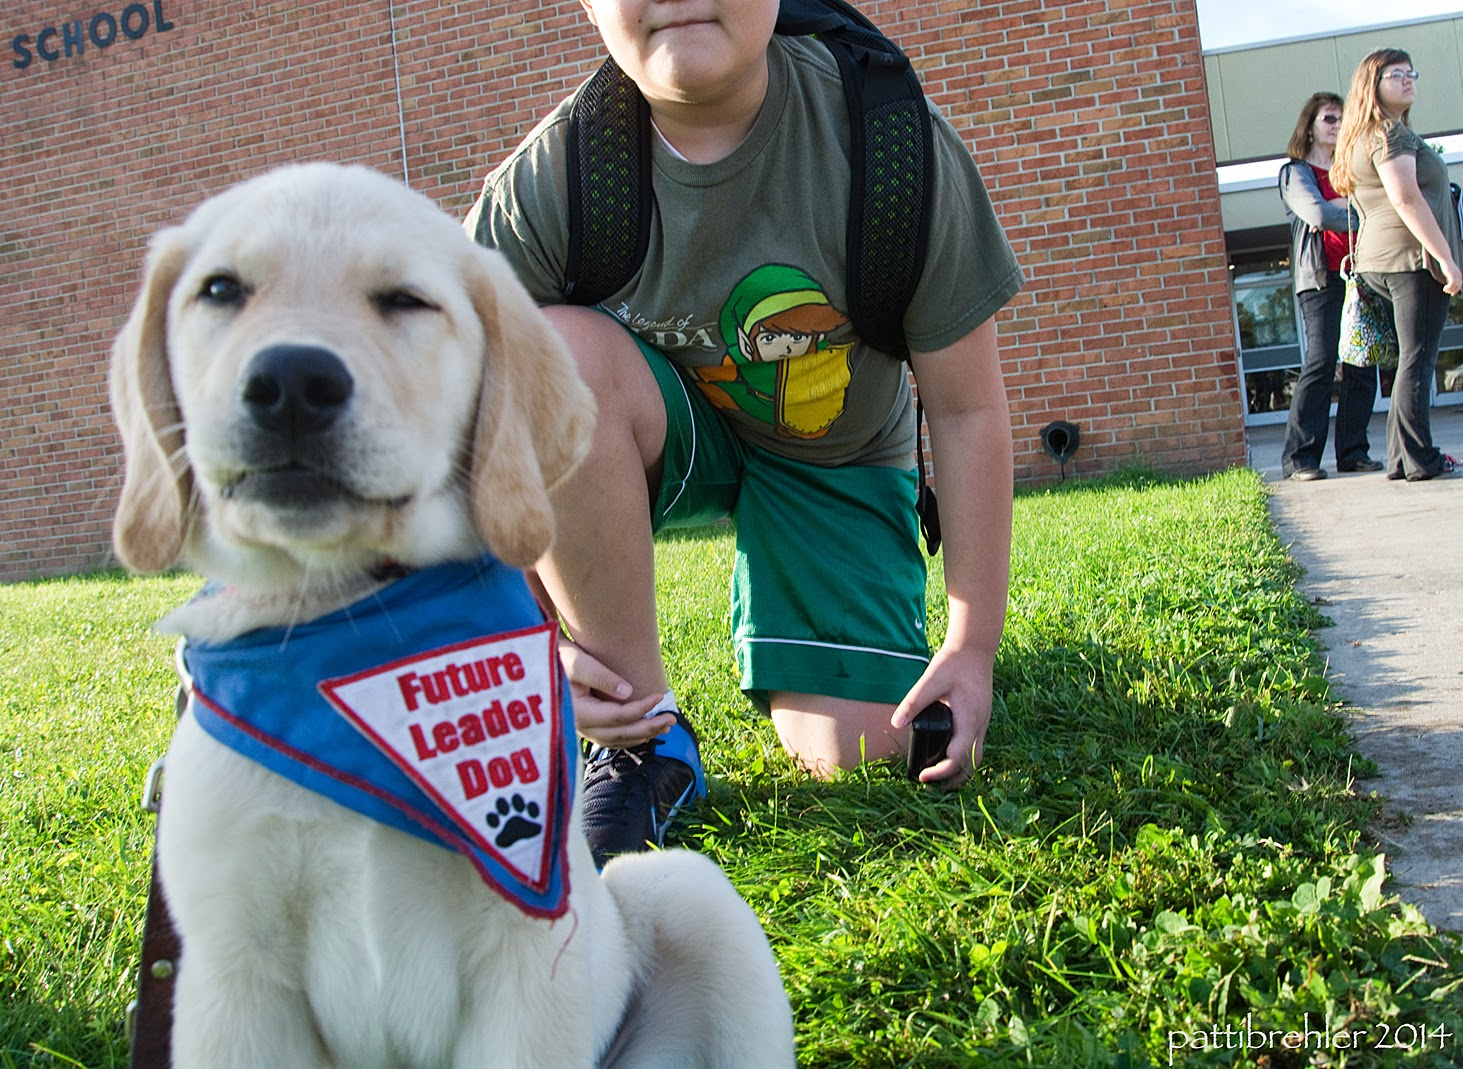 A low, close shot of a small yellow golden retriever/lab mix puppy wearing a blue Future Leader Dog bandana. The puppy is sitting in the grass looking at the camera and it looks like he is winking with his left eye. Behind him to the right is a young boy kneeling on one knee and wearing a backpack. The boy's face is cut off, you can just see his chin and mouth. In the background is a red brick wall and two women standing on the far right looking to the right.